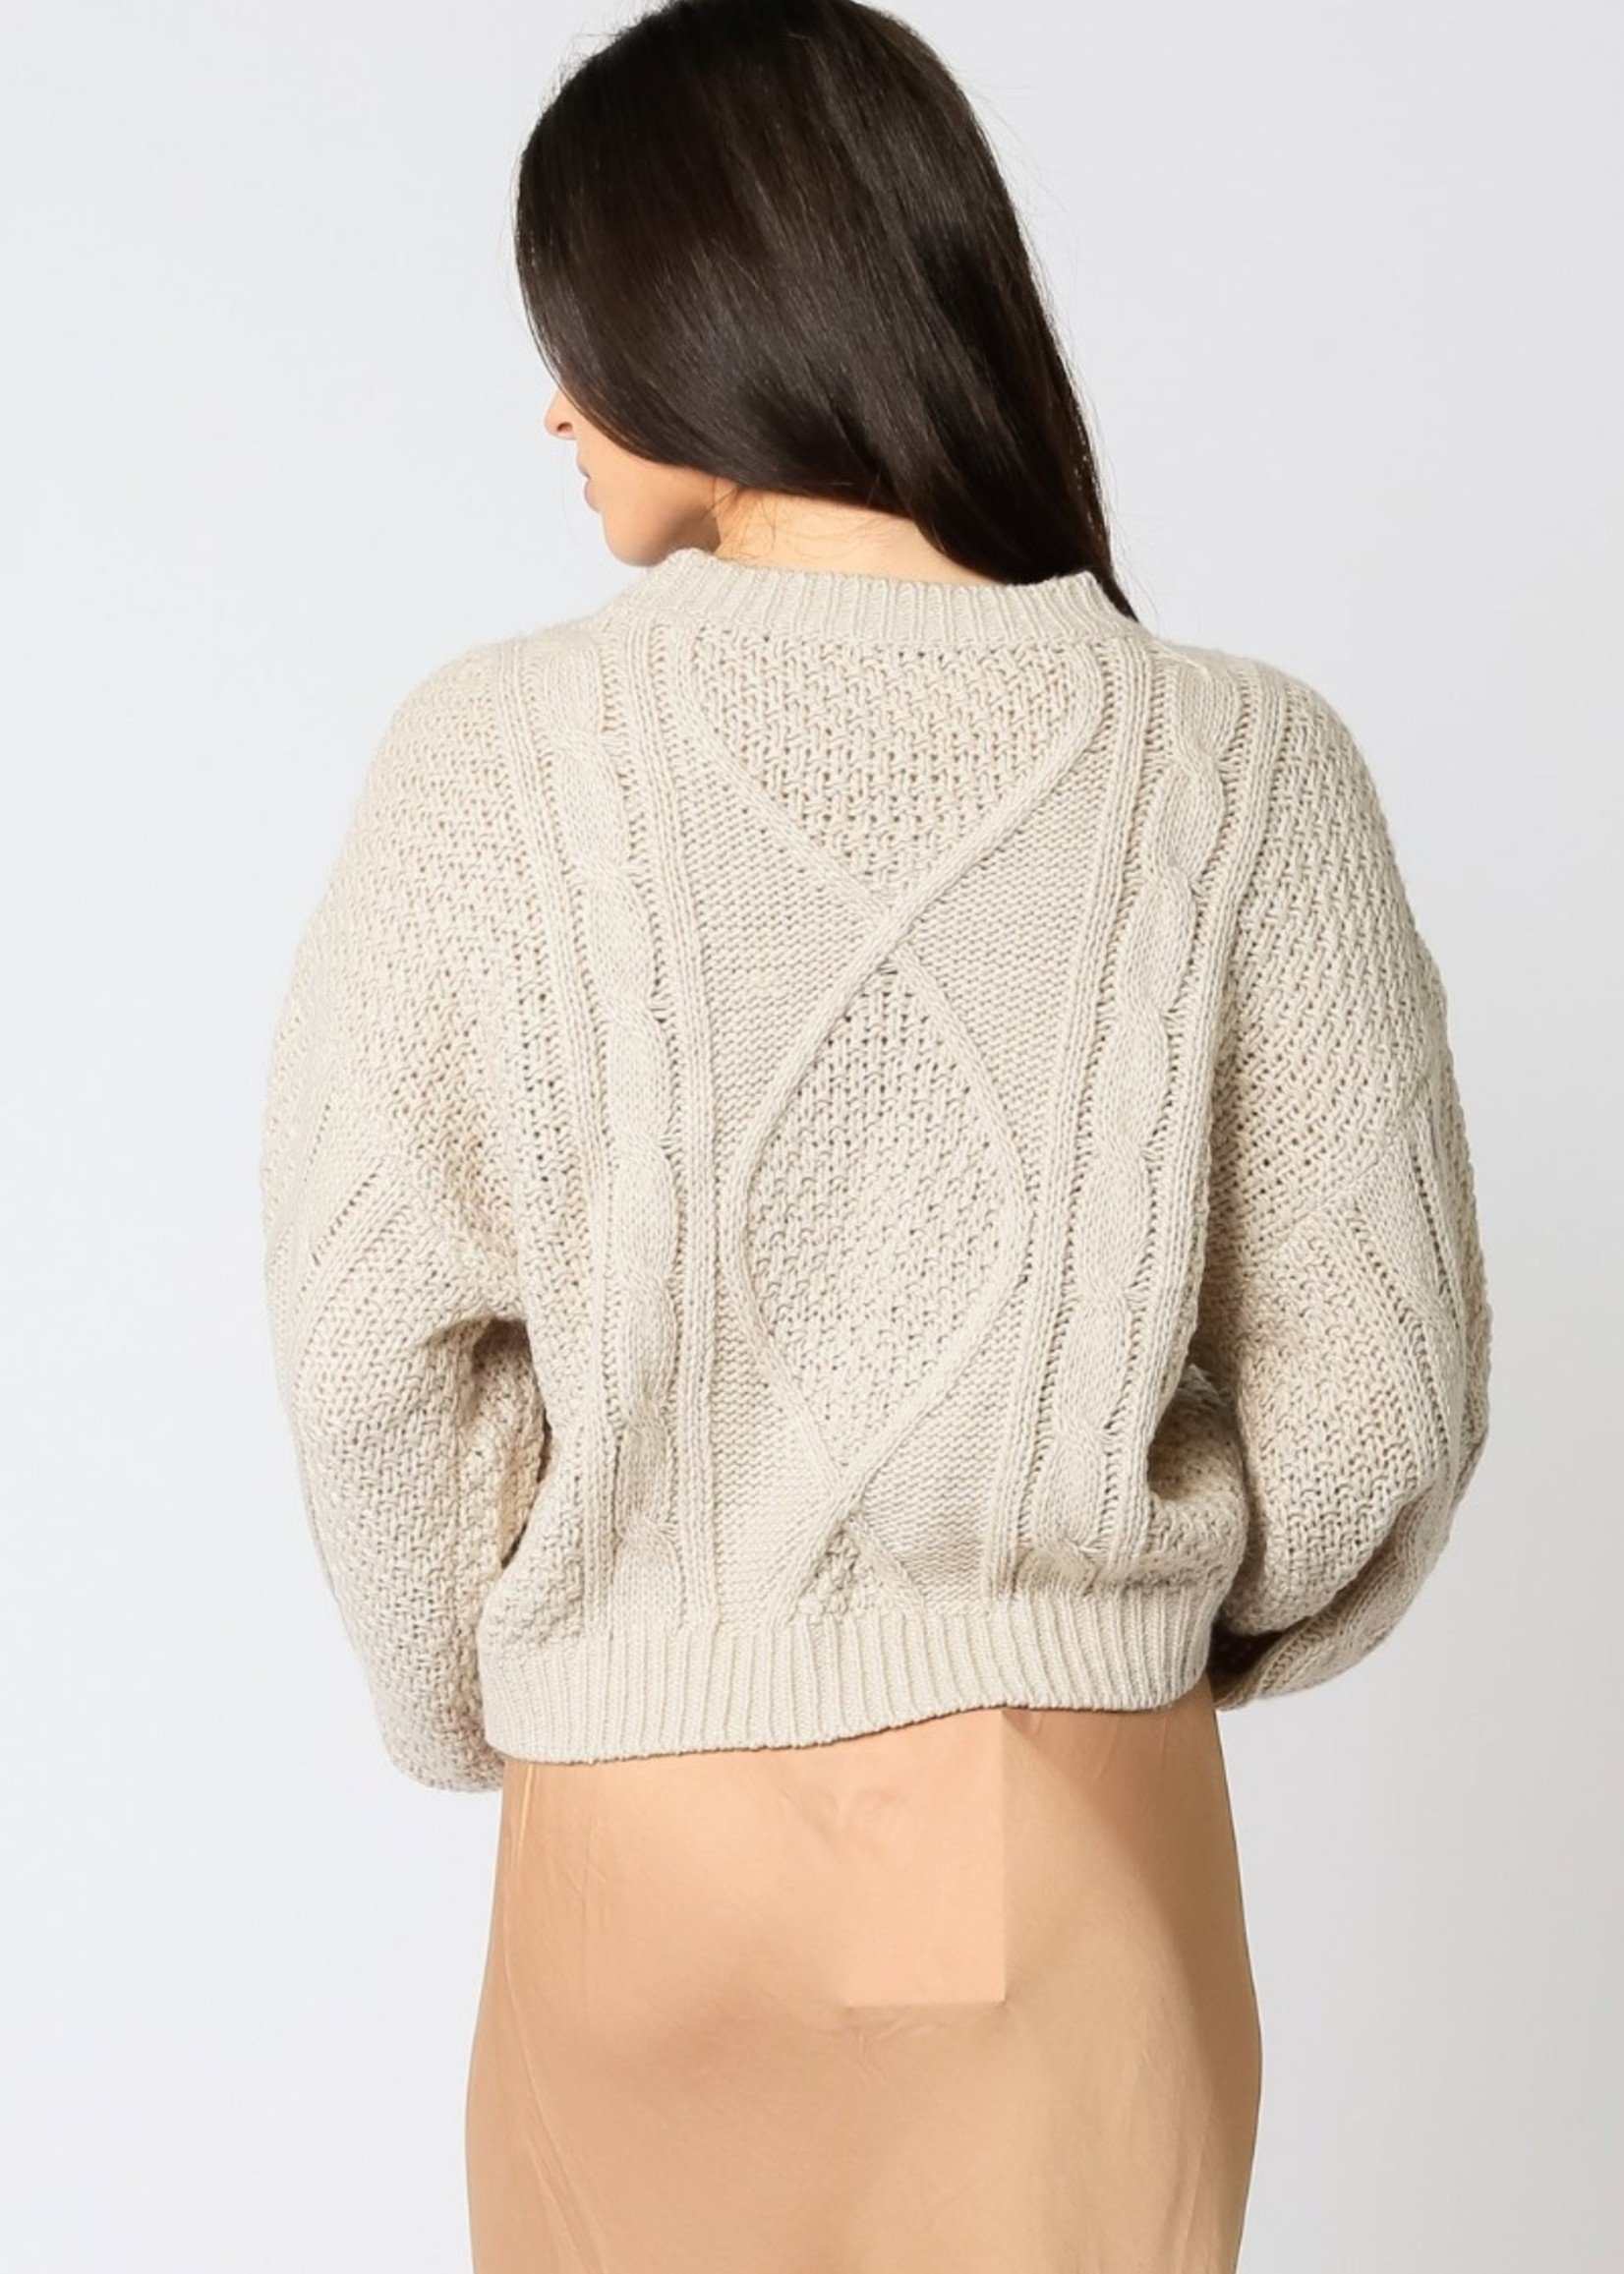 Multi Cable Knit Fisherman Sweater